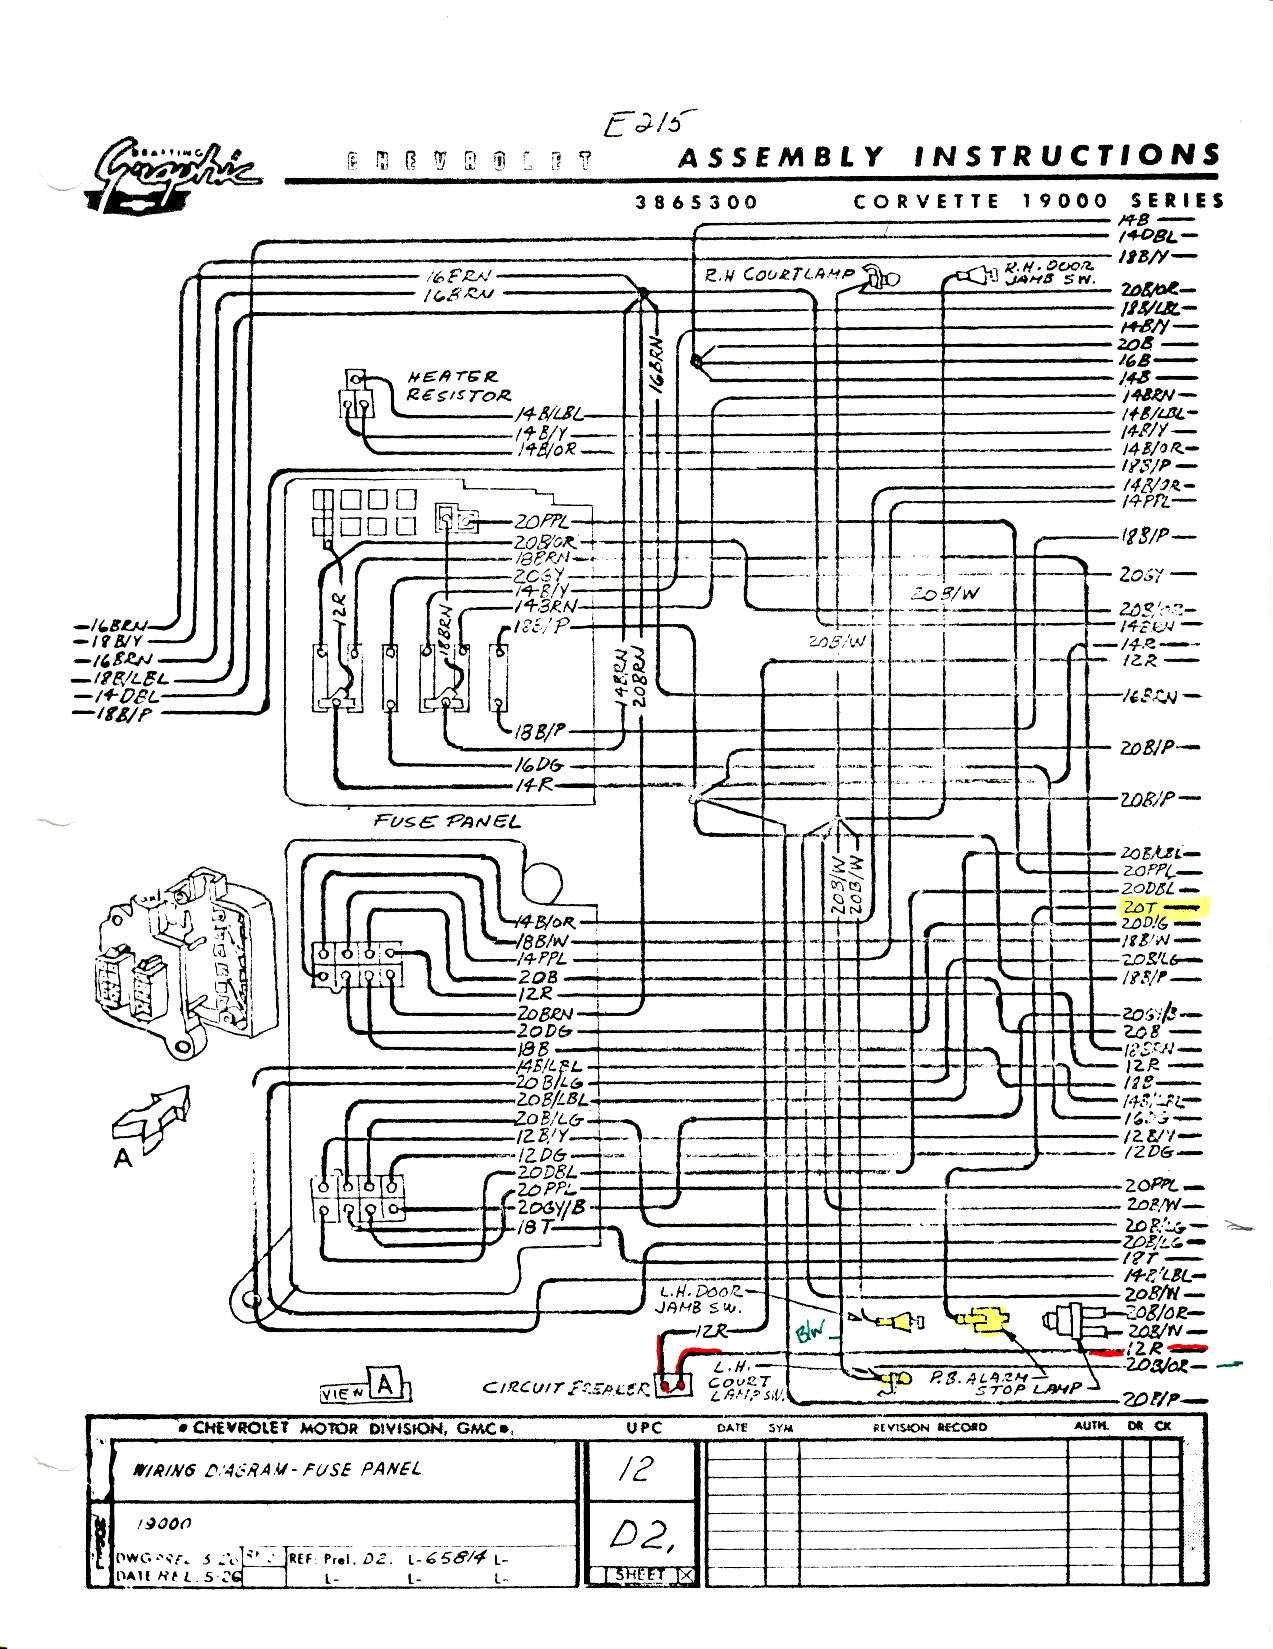 hight resolution of i need a 1965 wiring diagram corvetteforum chevrolet corvettei need a 1965 wiring diagram corvetteforum chevrolet